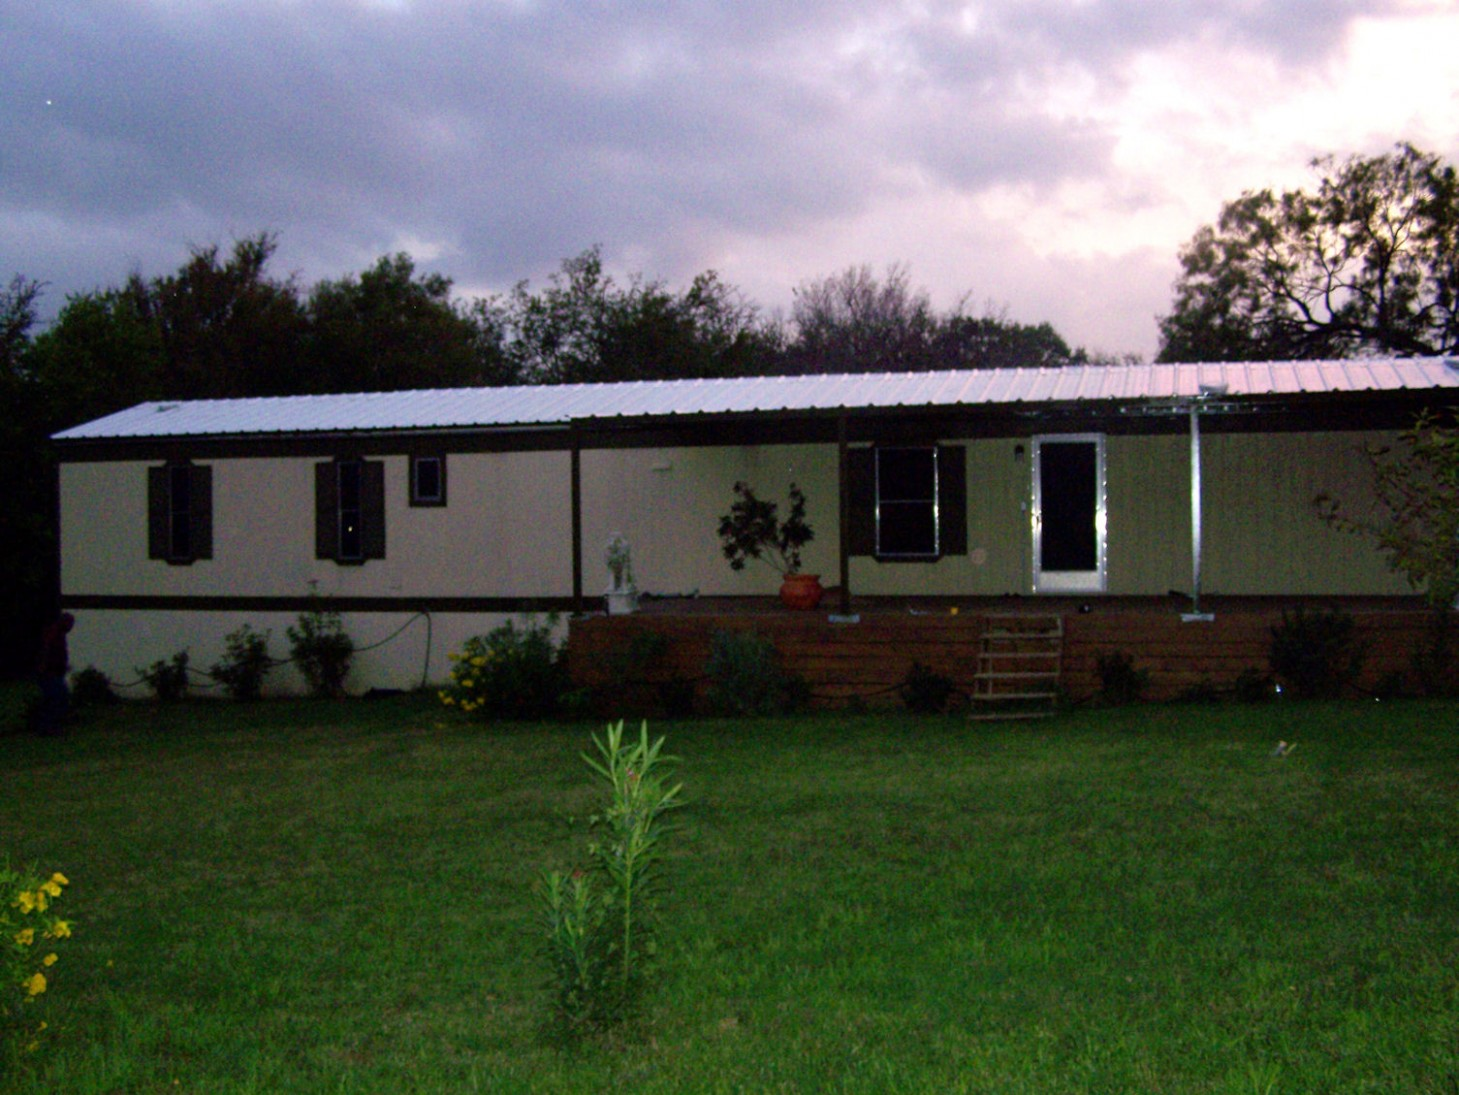 The Cheapest Way To Earn Your Free Ticket To Carport Home | carport home